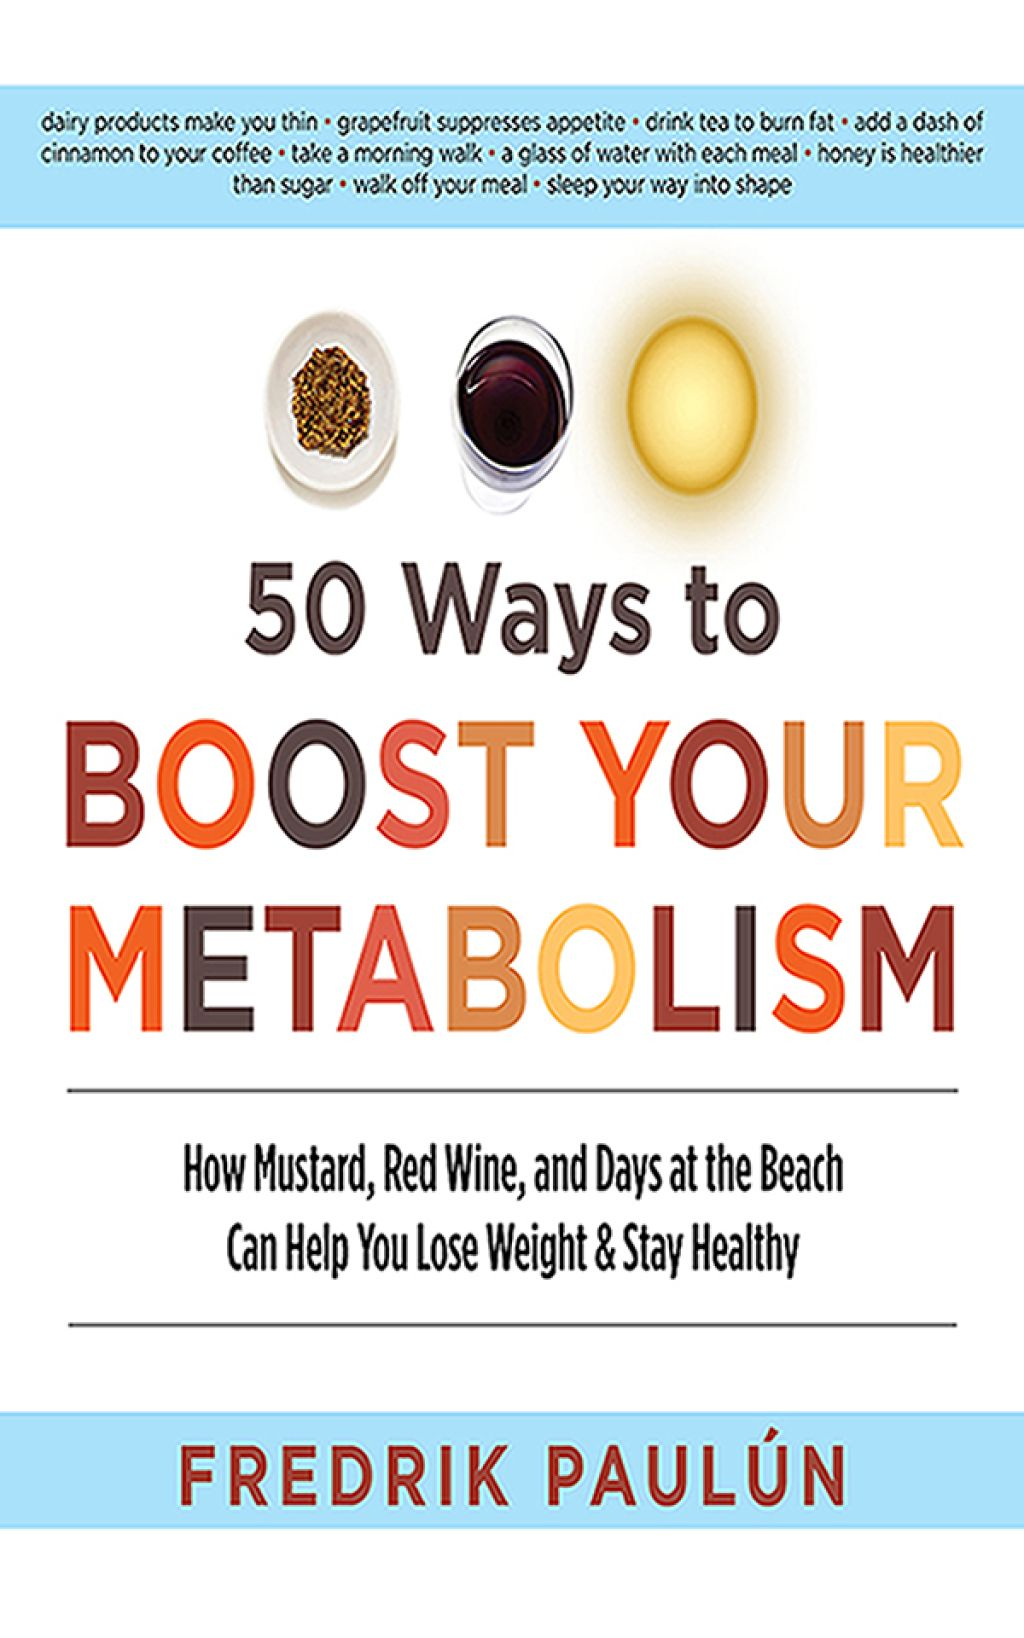 50 Ways to Boost Your Metabolism (eBook) Boost your